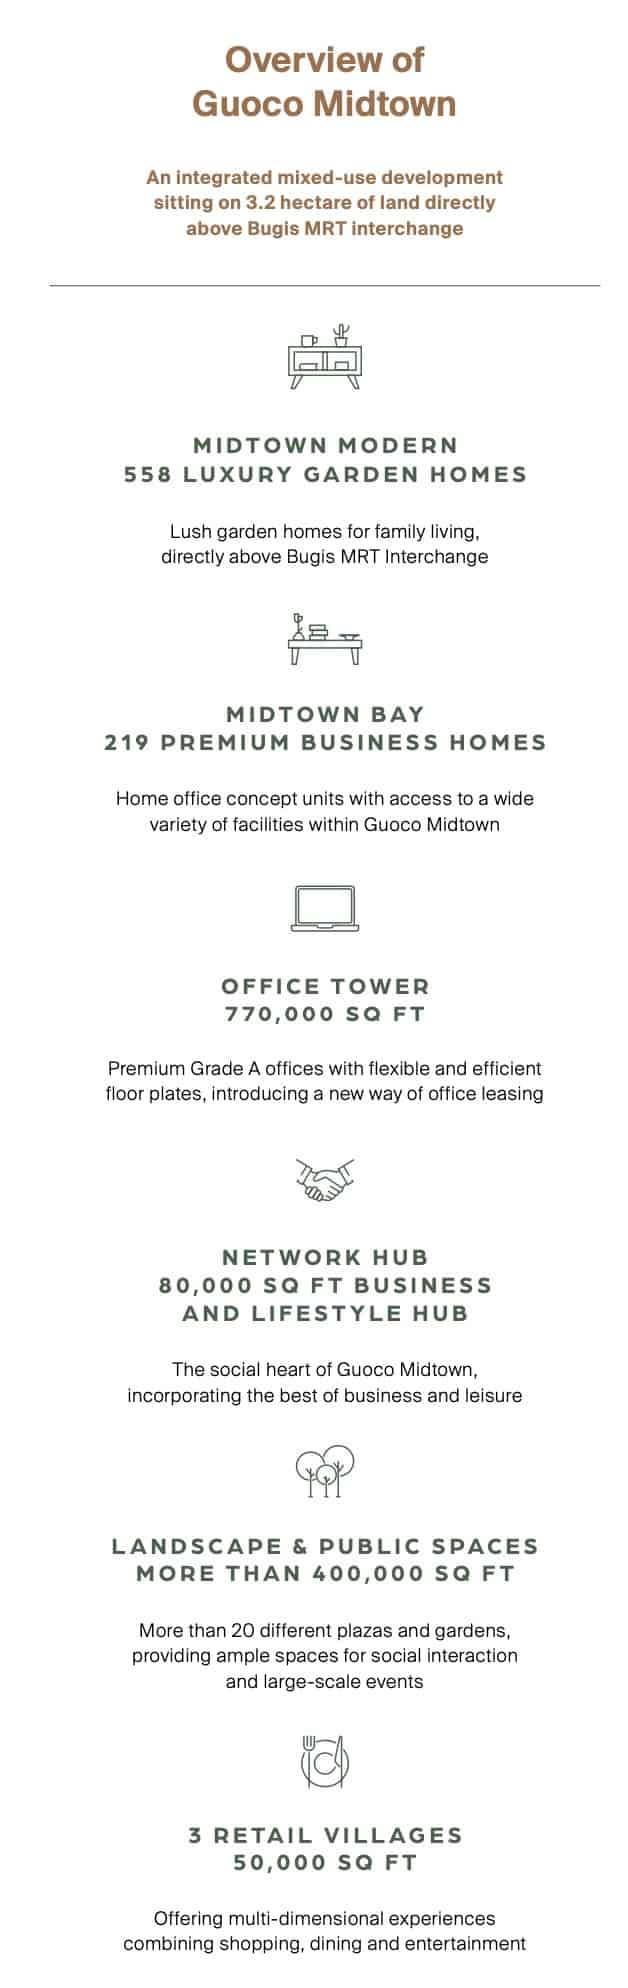 Midtown Modern Overview At A Glance